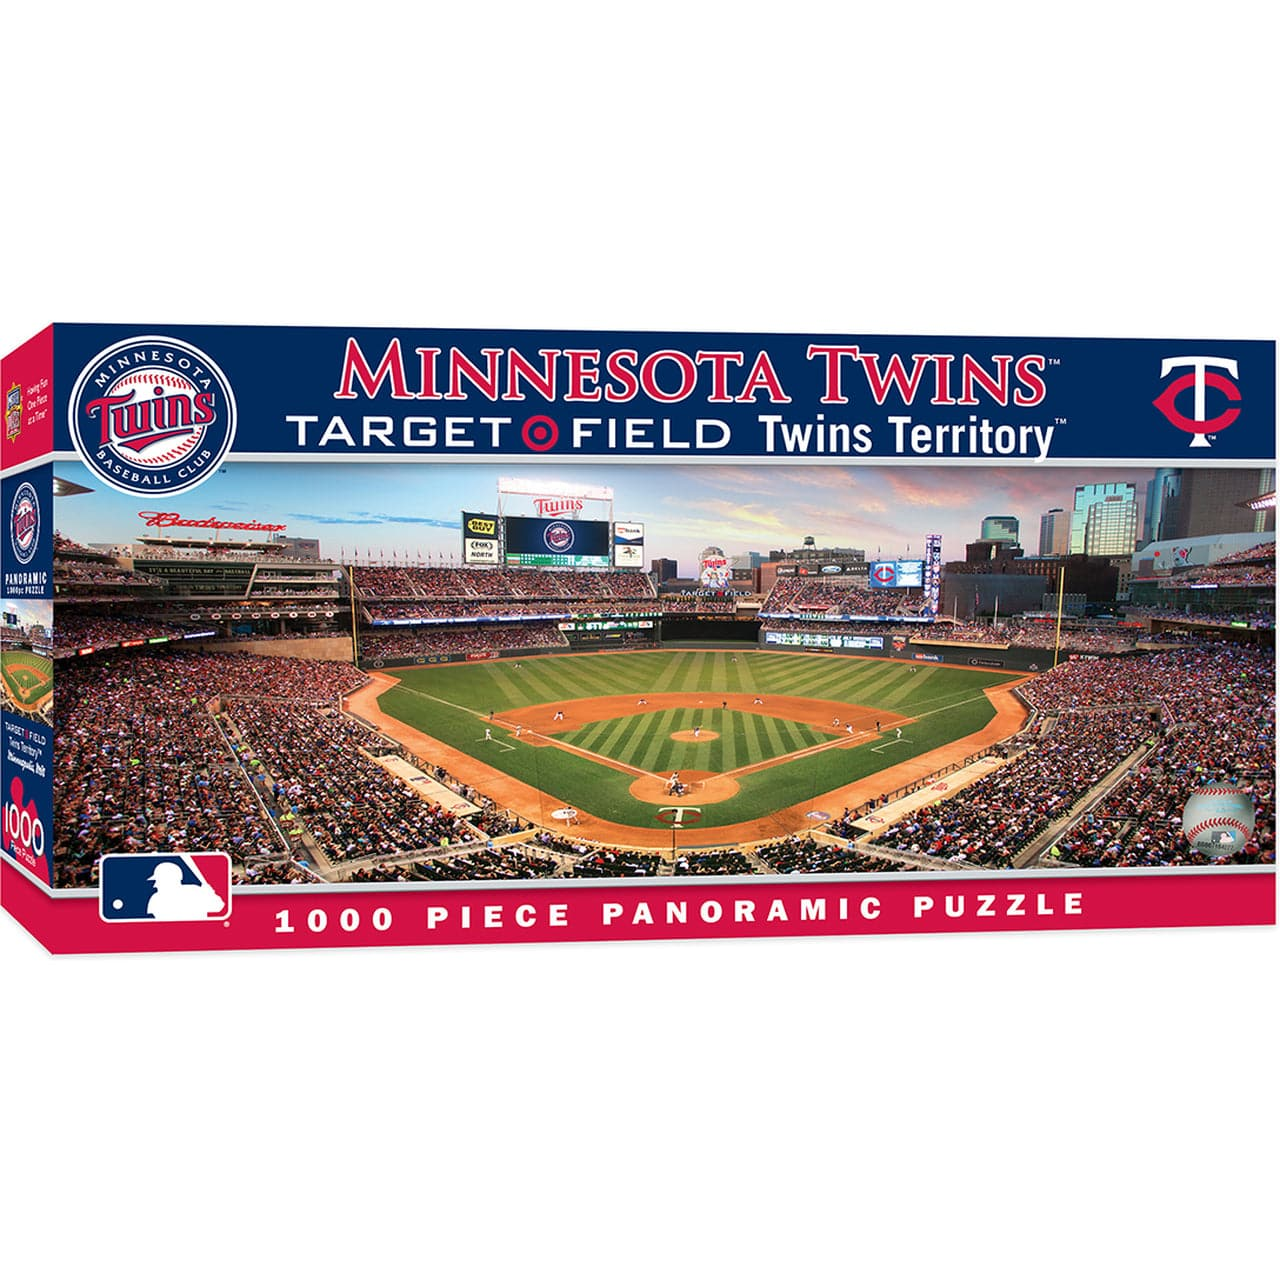 Minnesota Twins Panoramic Puzzle - 1,000 Piece Puzzle